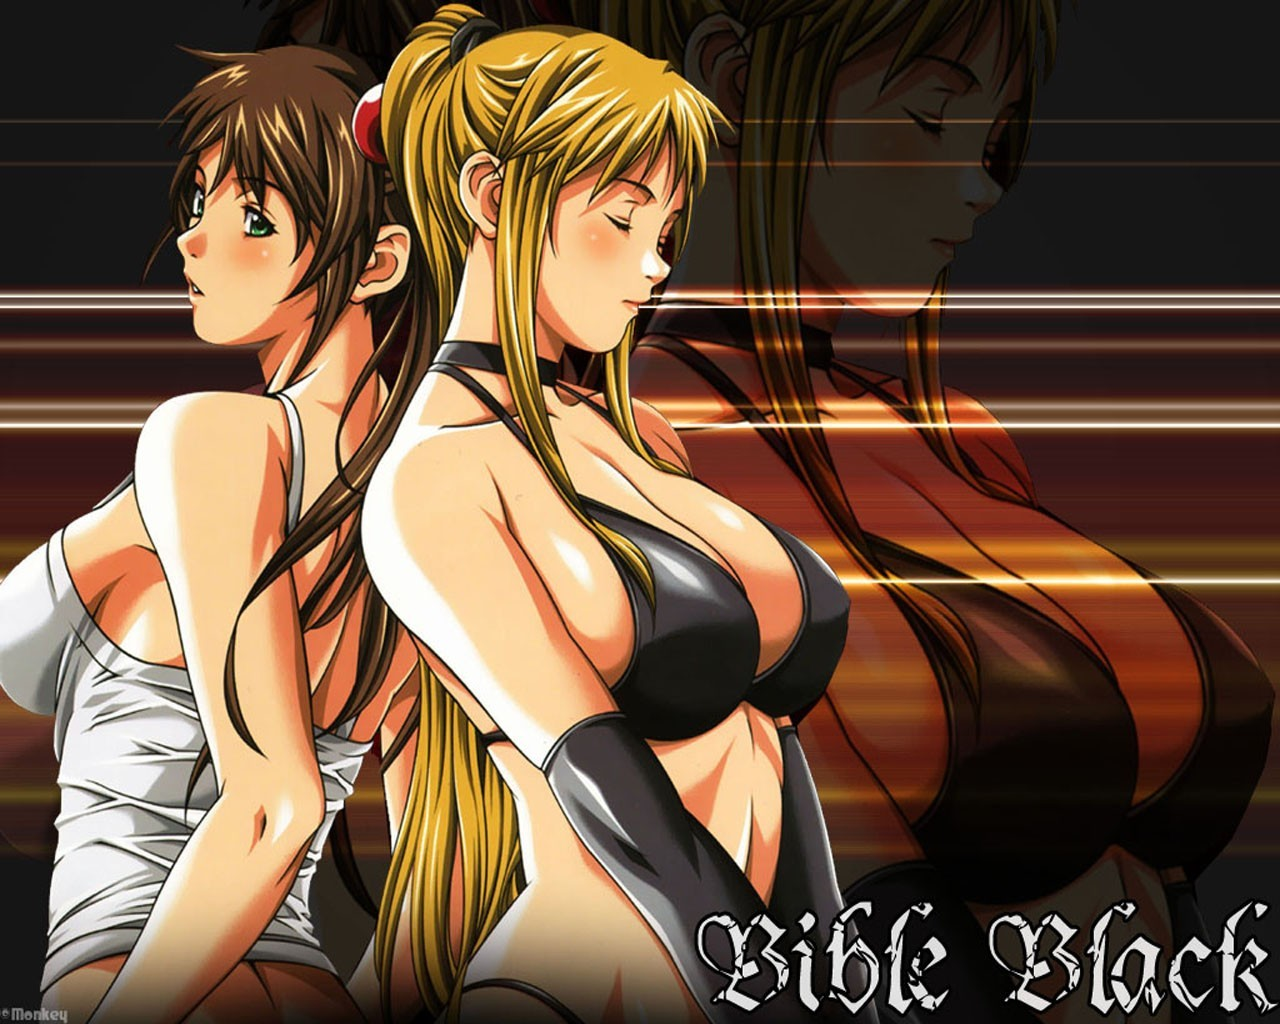 hentai Bible Black Kurumi HD Wallpaper